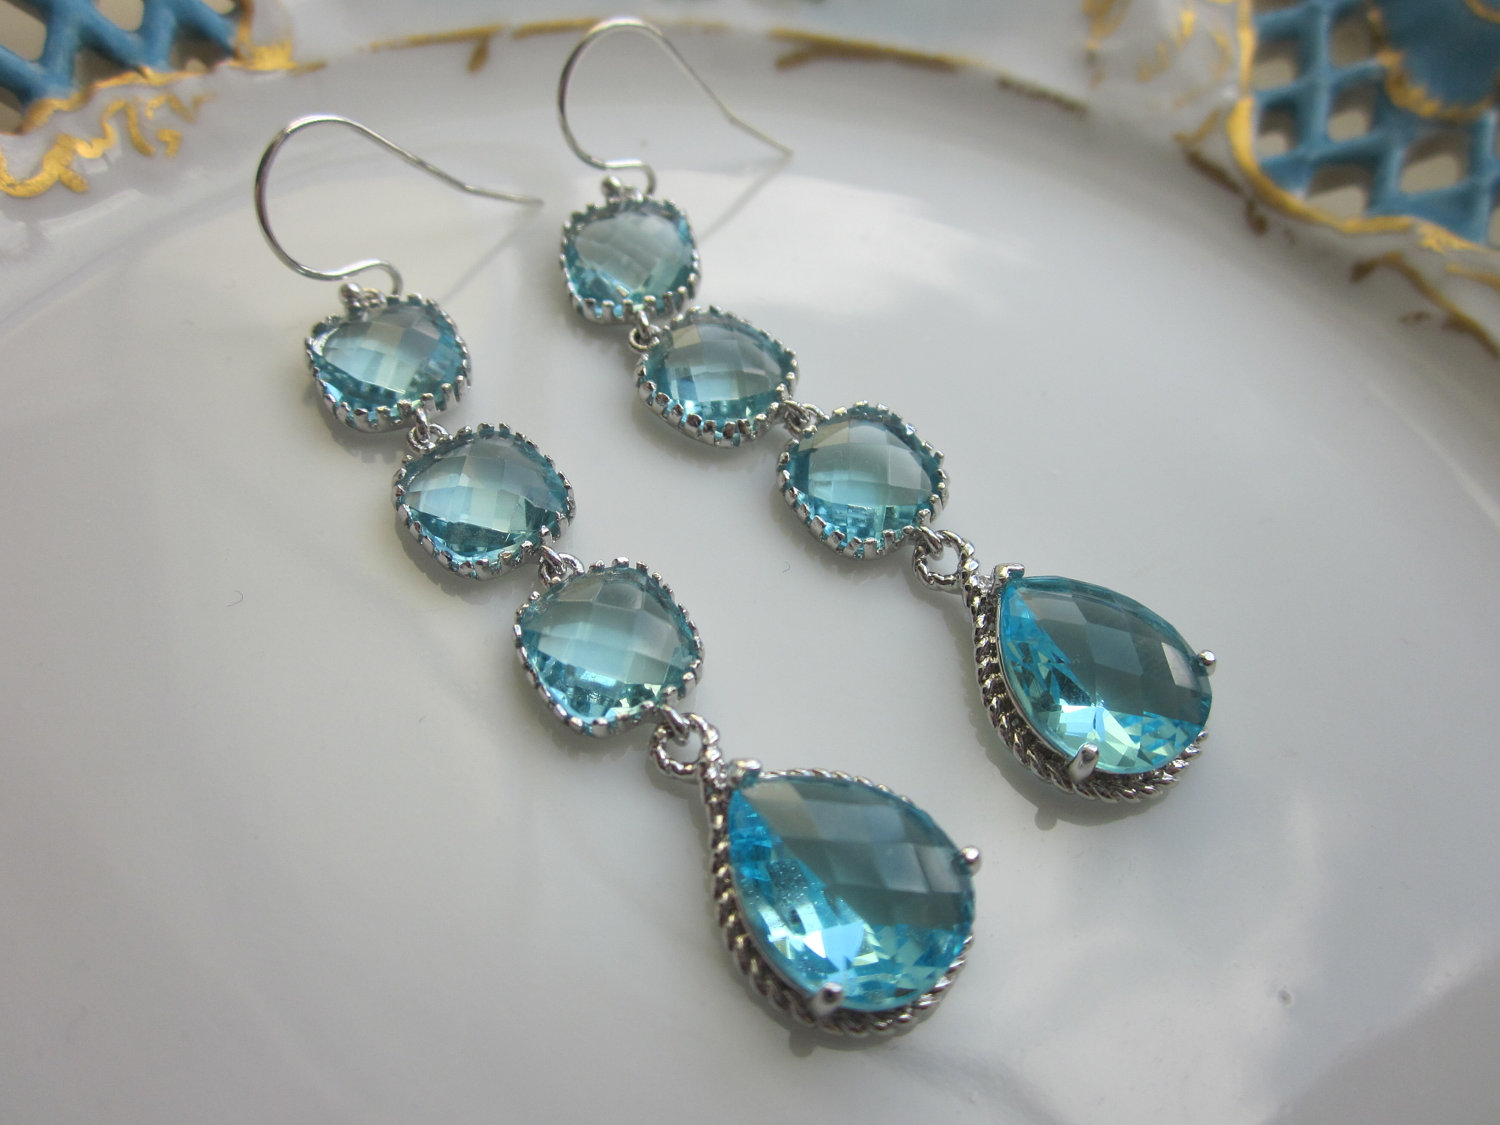 Aquamarine Earrings Blue Aqua 4 Tier Sterling Silver Bridesmaid Wedding Bridal